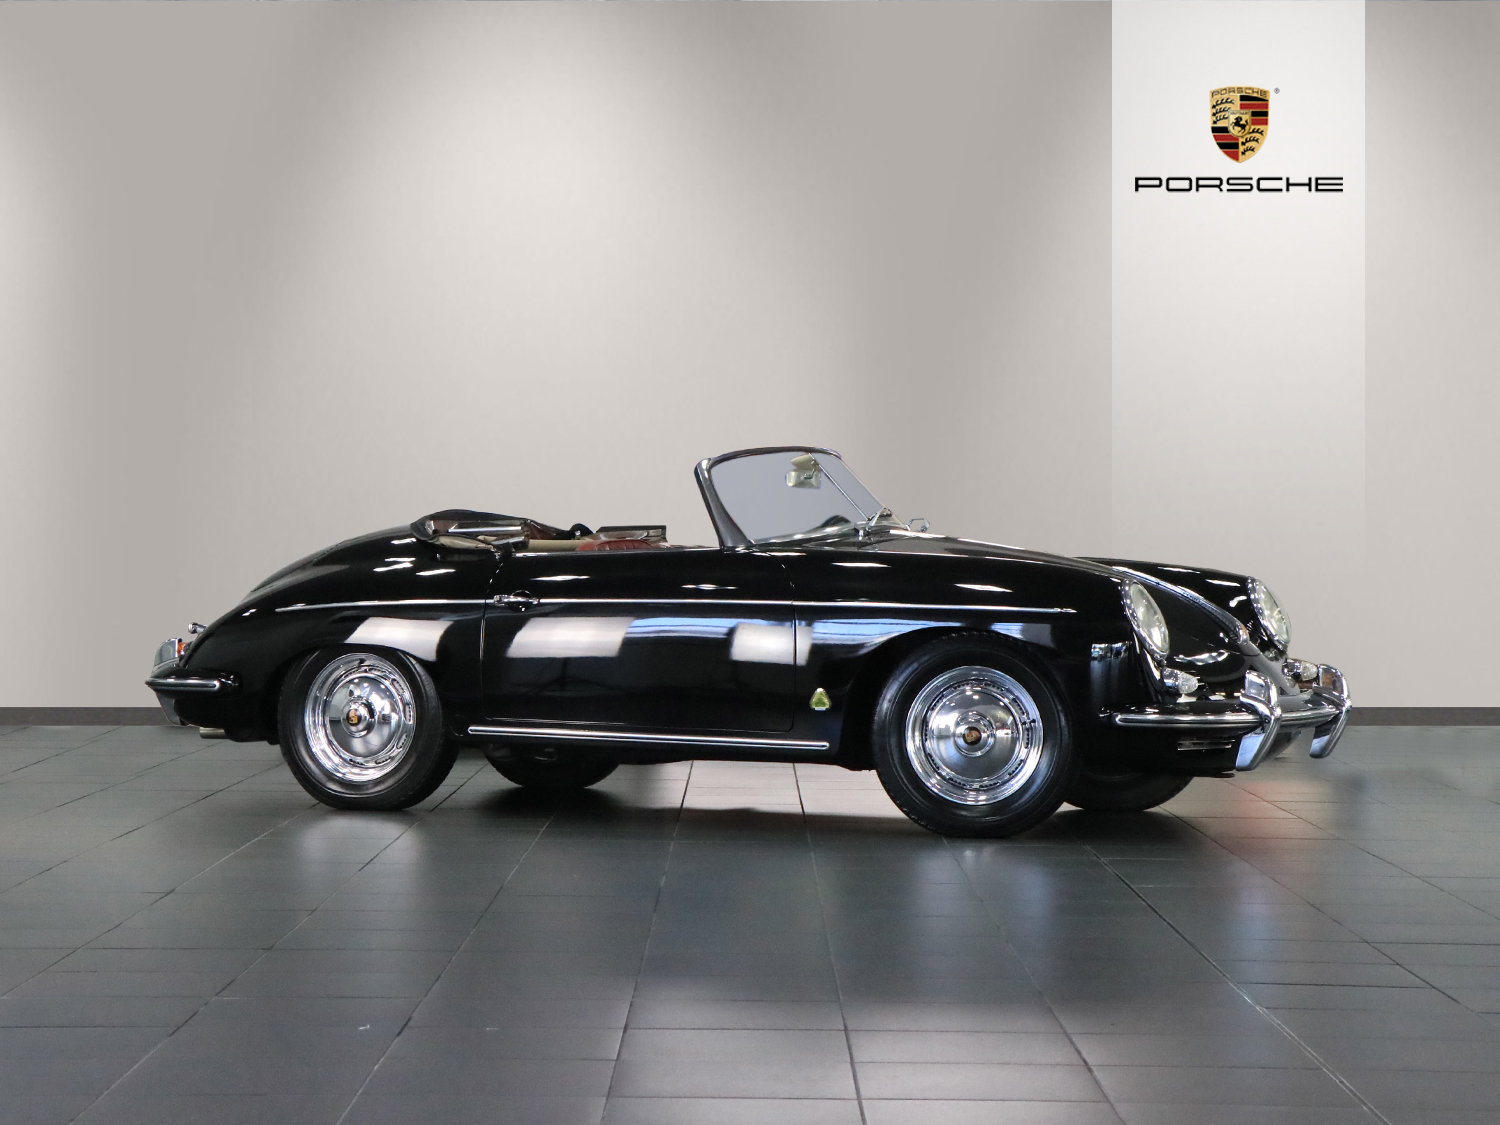 1961 Porsche 356 B Roadster For Sale (picture 1 of 6)